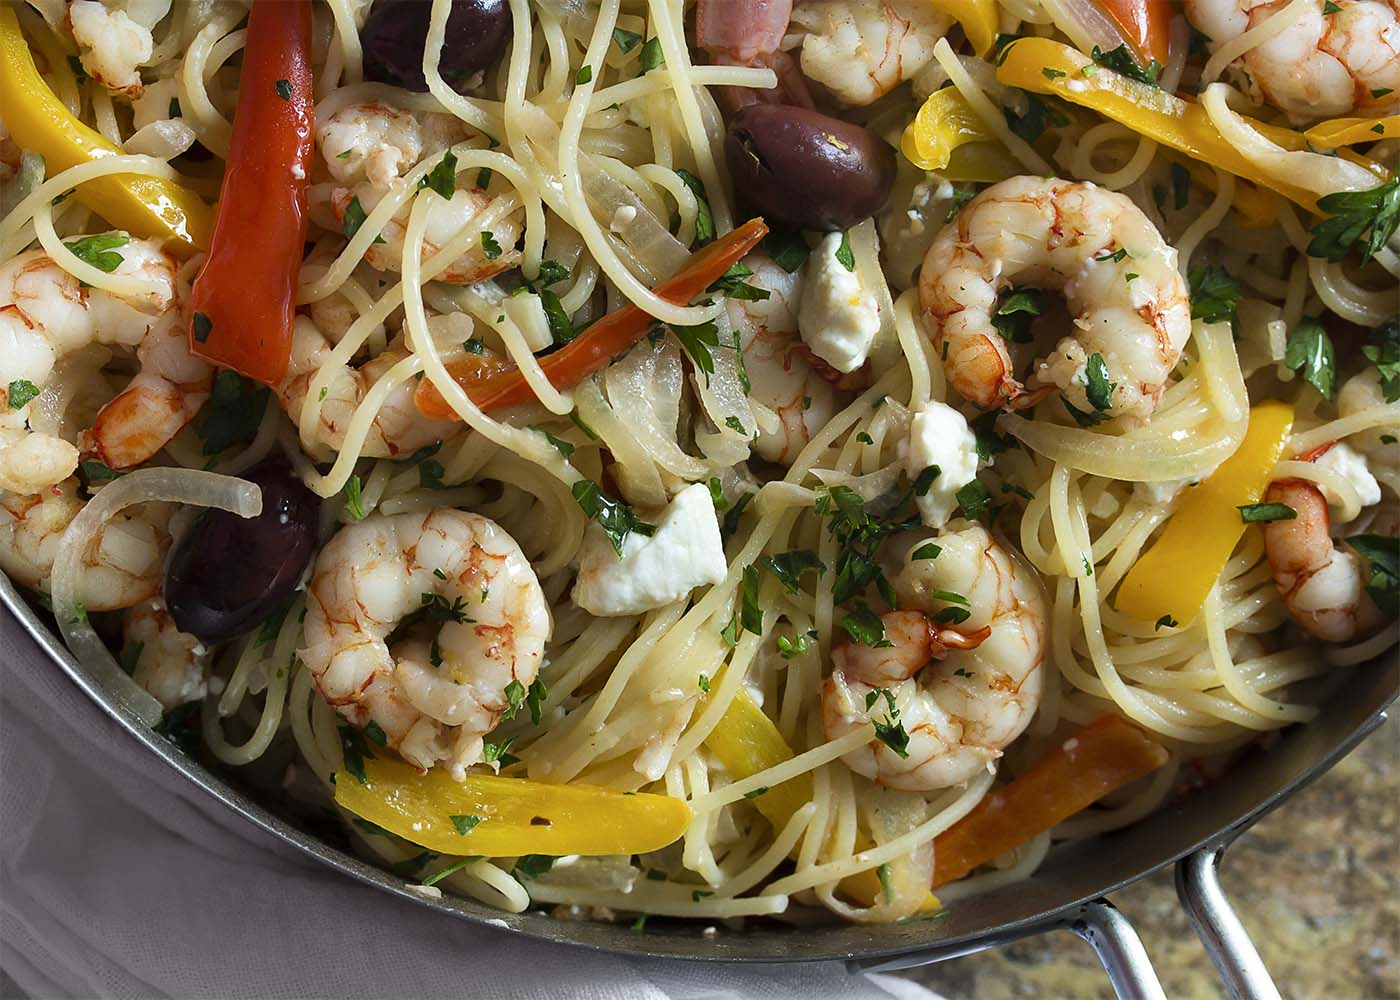 Top down view of the shrimp and pasta in a large saute pan.